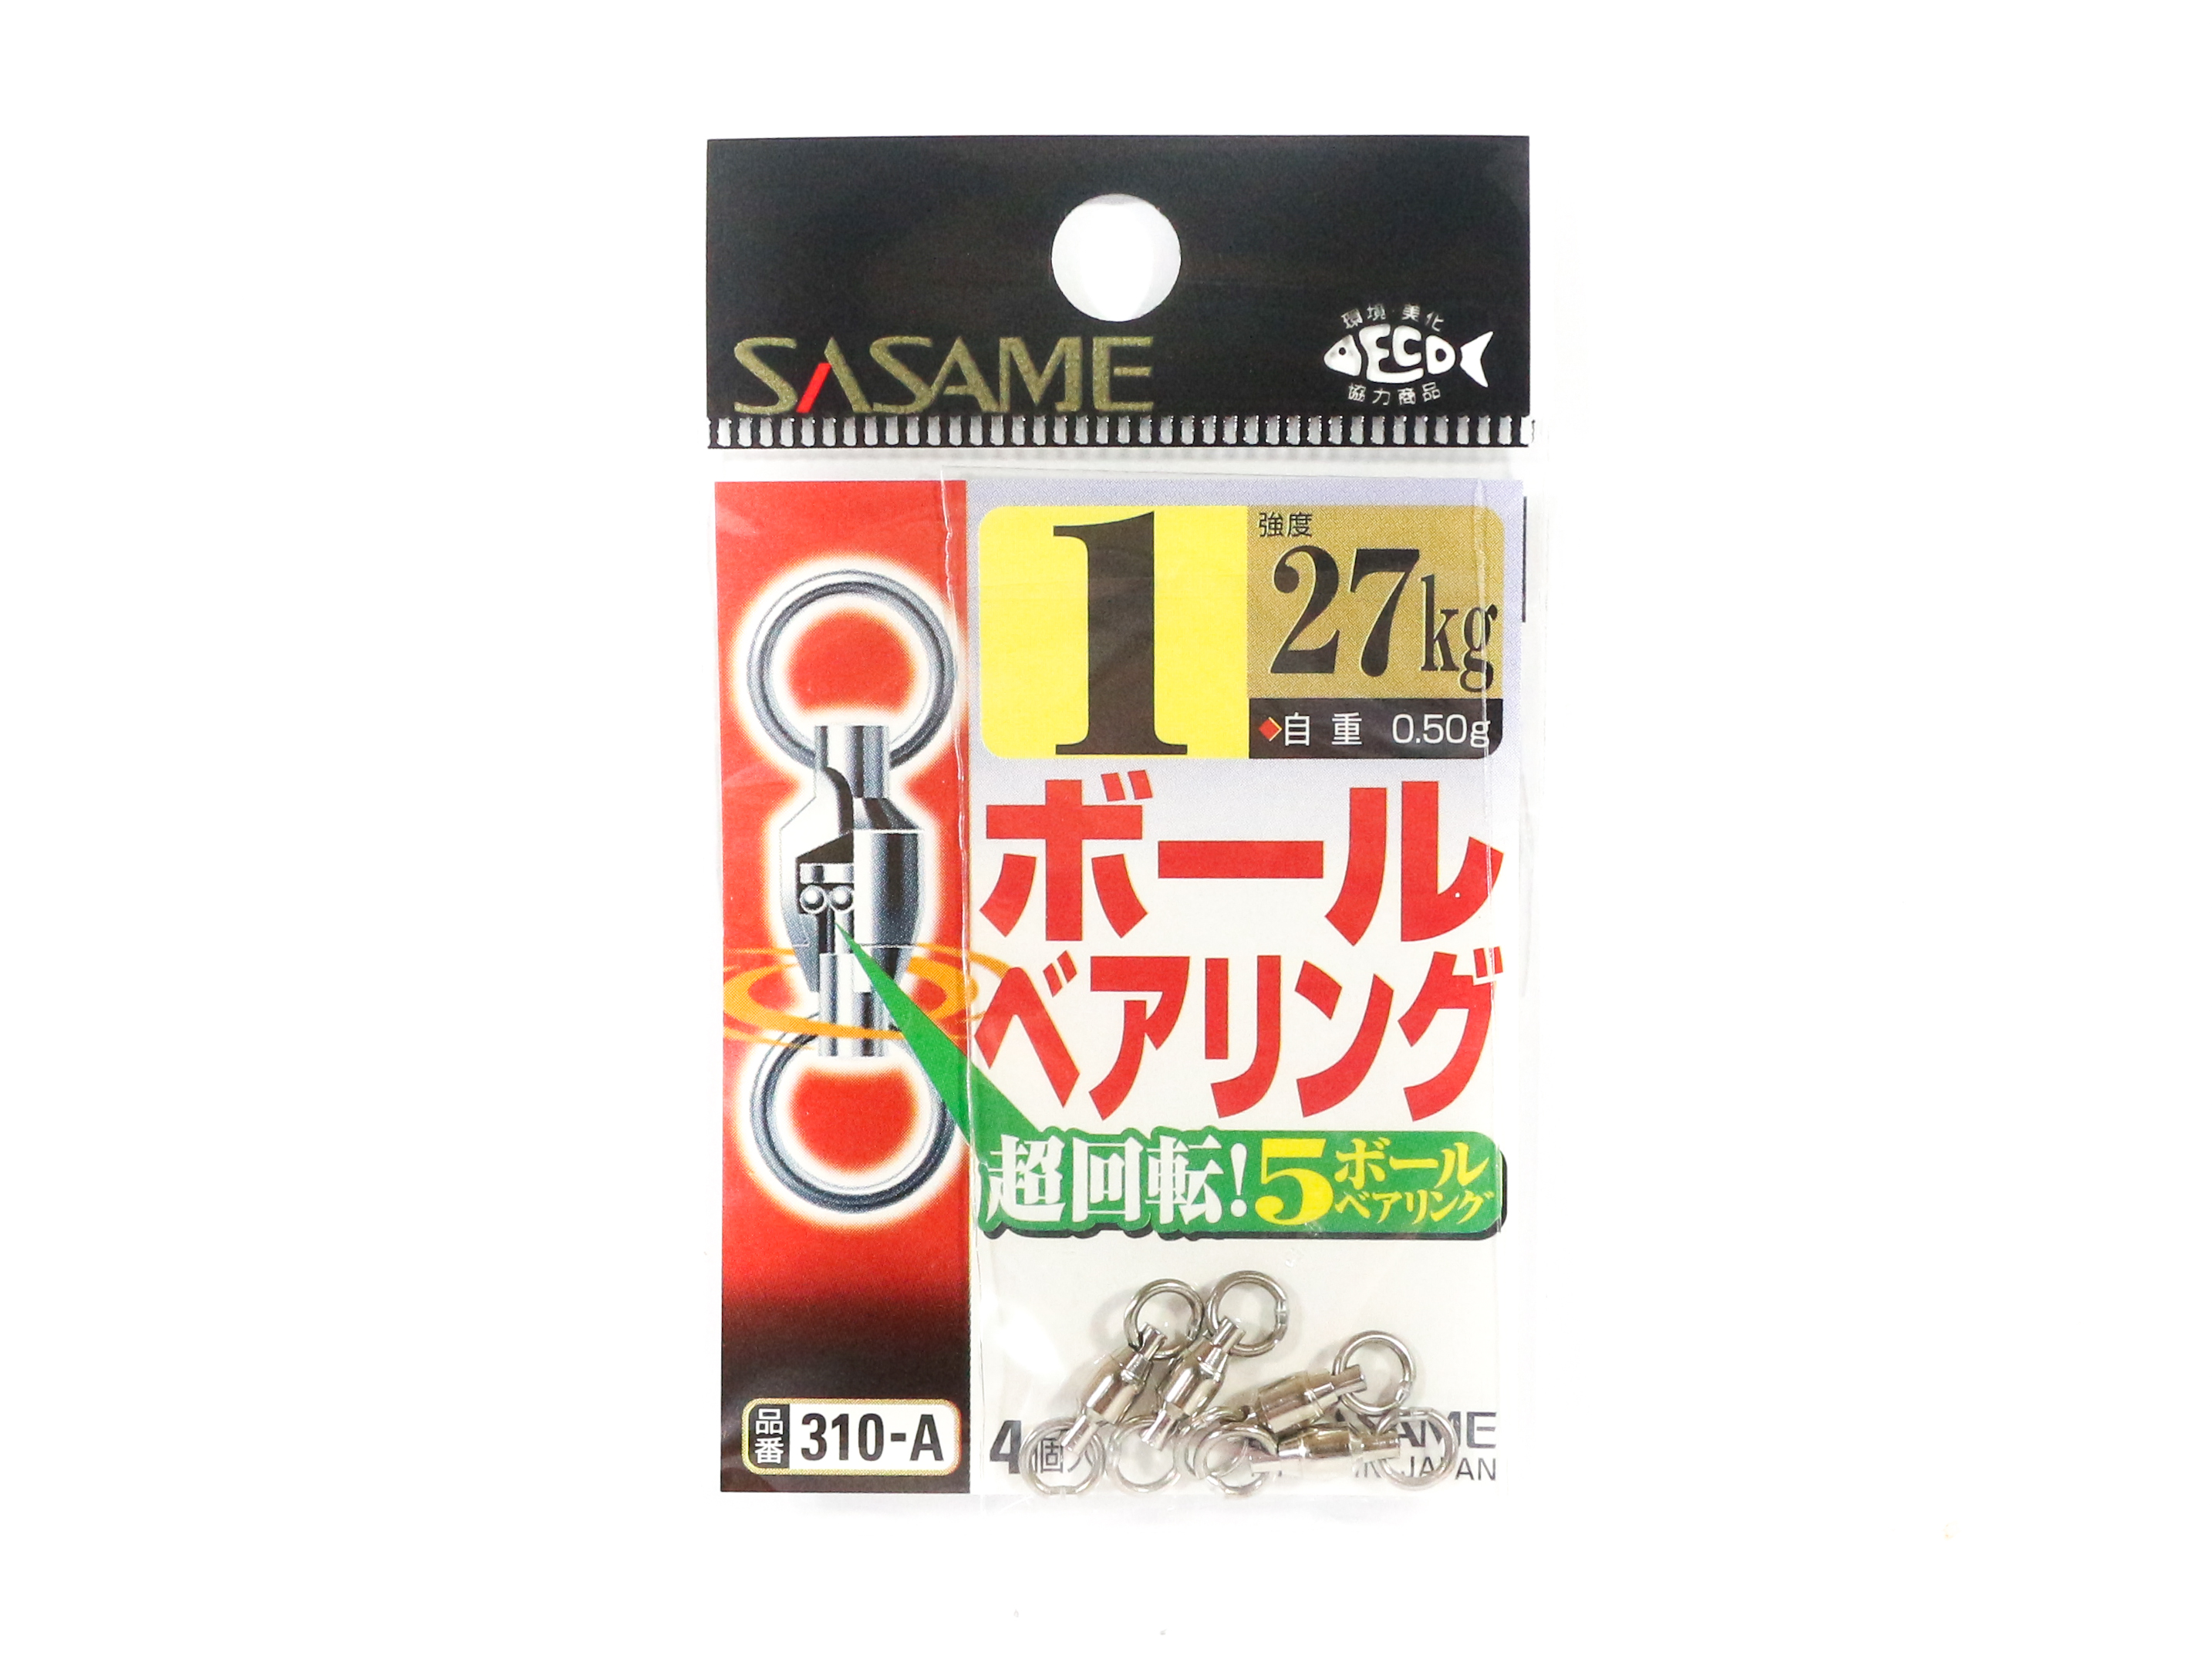 Sasame 310-A Ball Bearing Swivels High Quality Size 1 (1584)